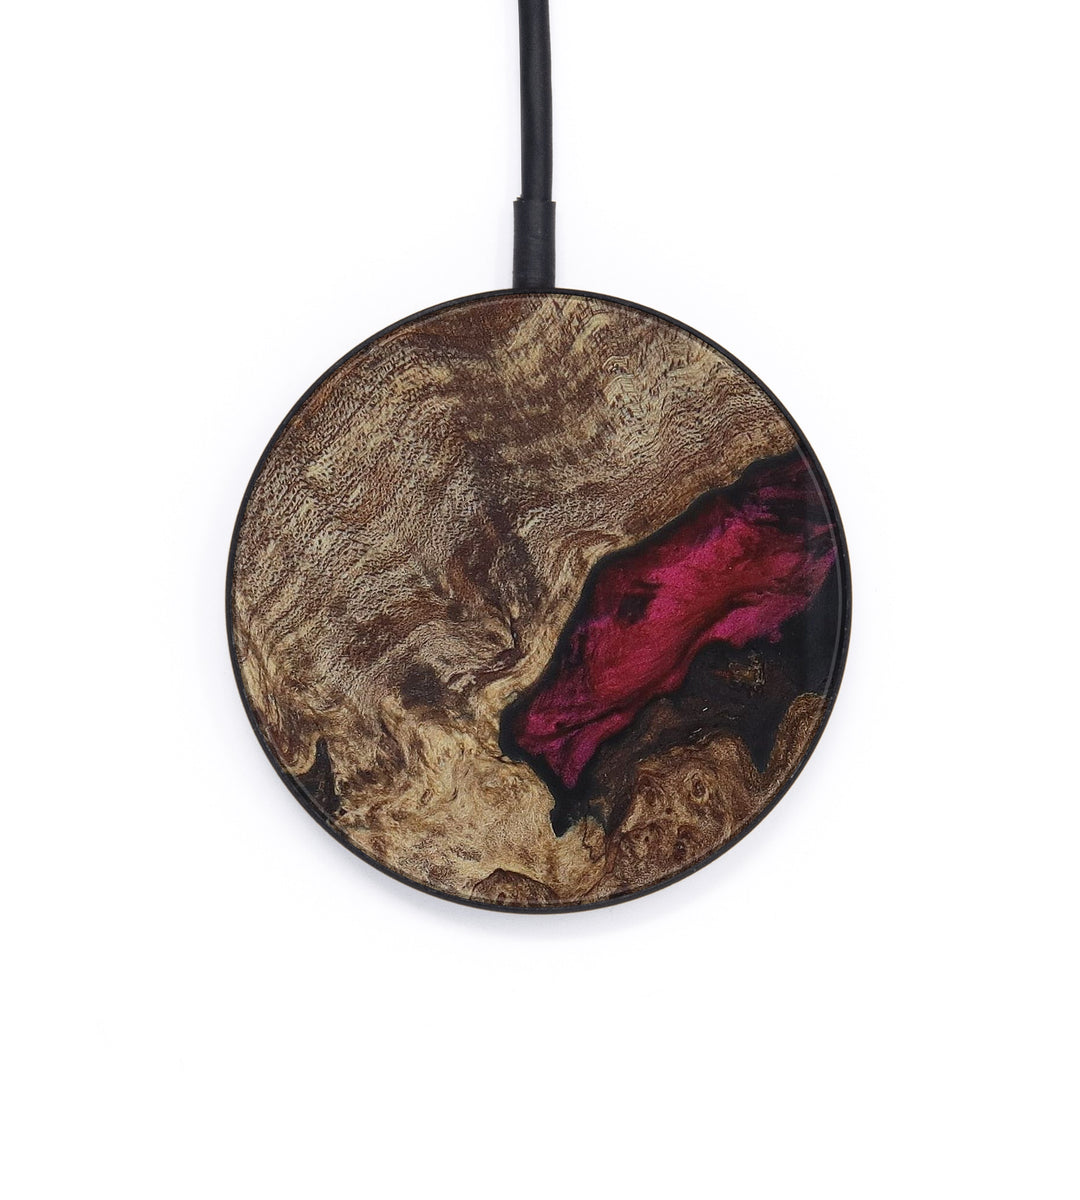 Circle Wood+Resin Wireless Charger - Belicia (Dark Red, 406362)